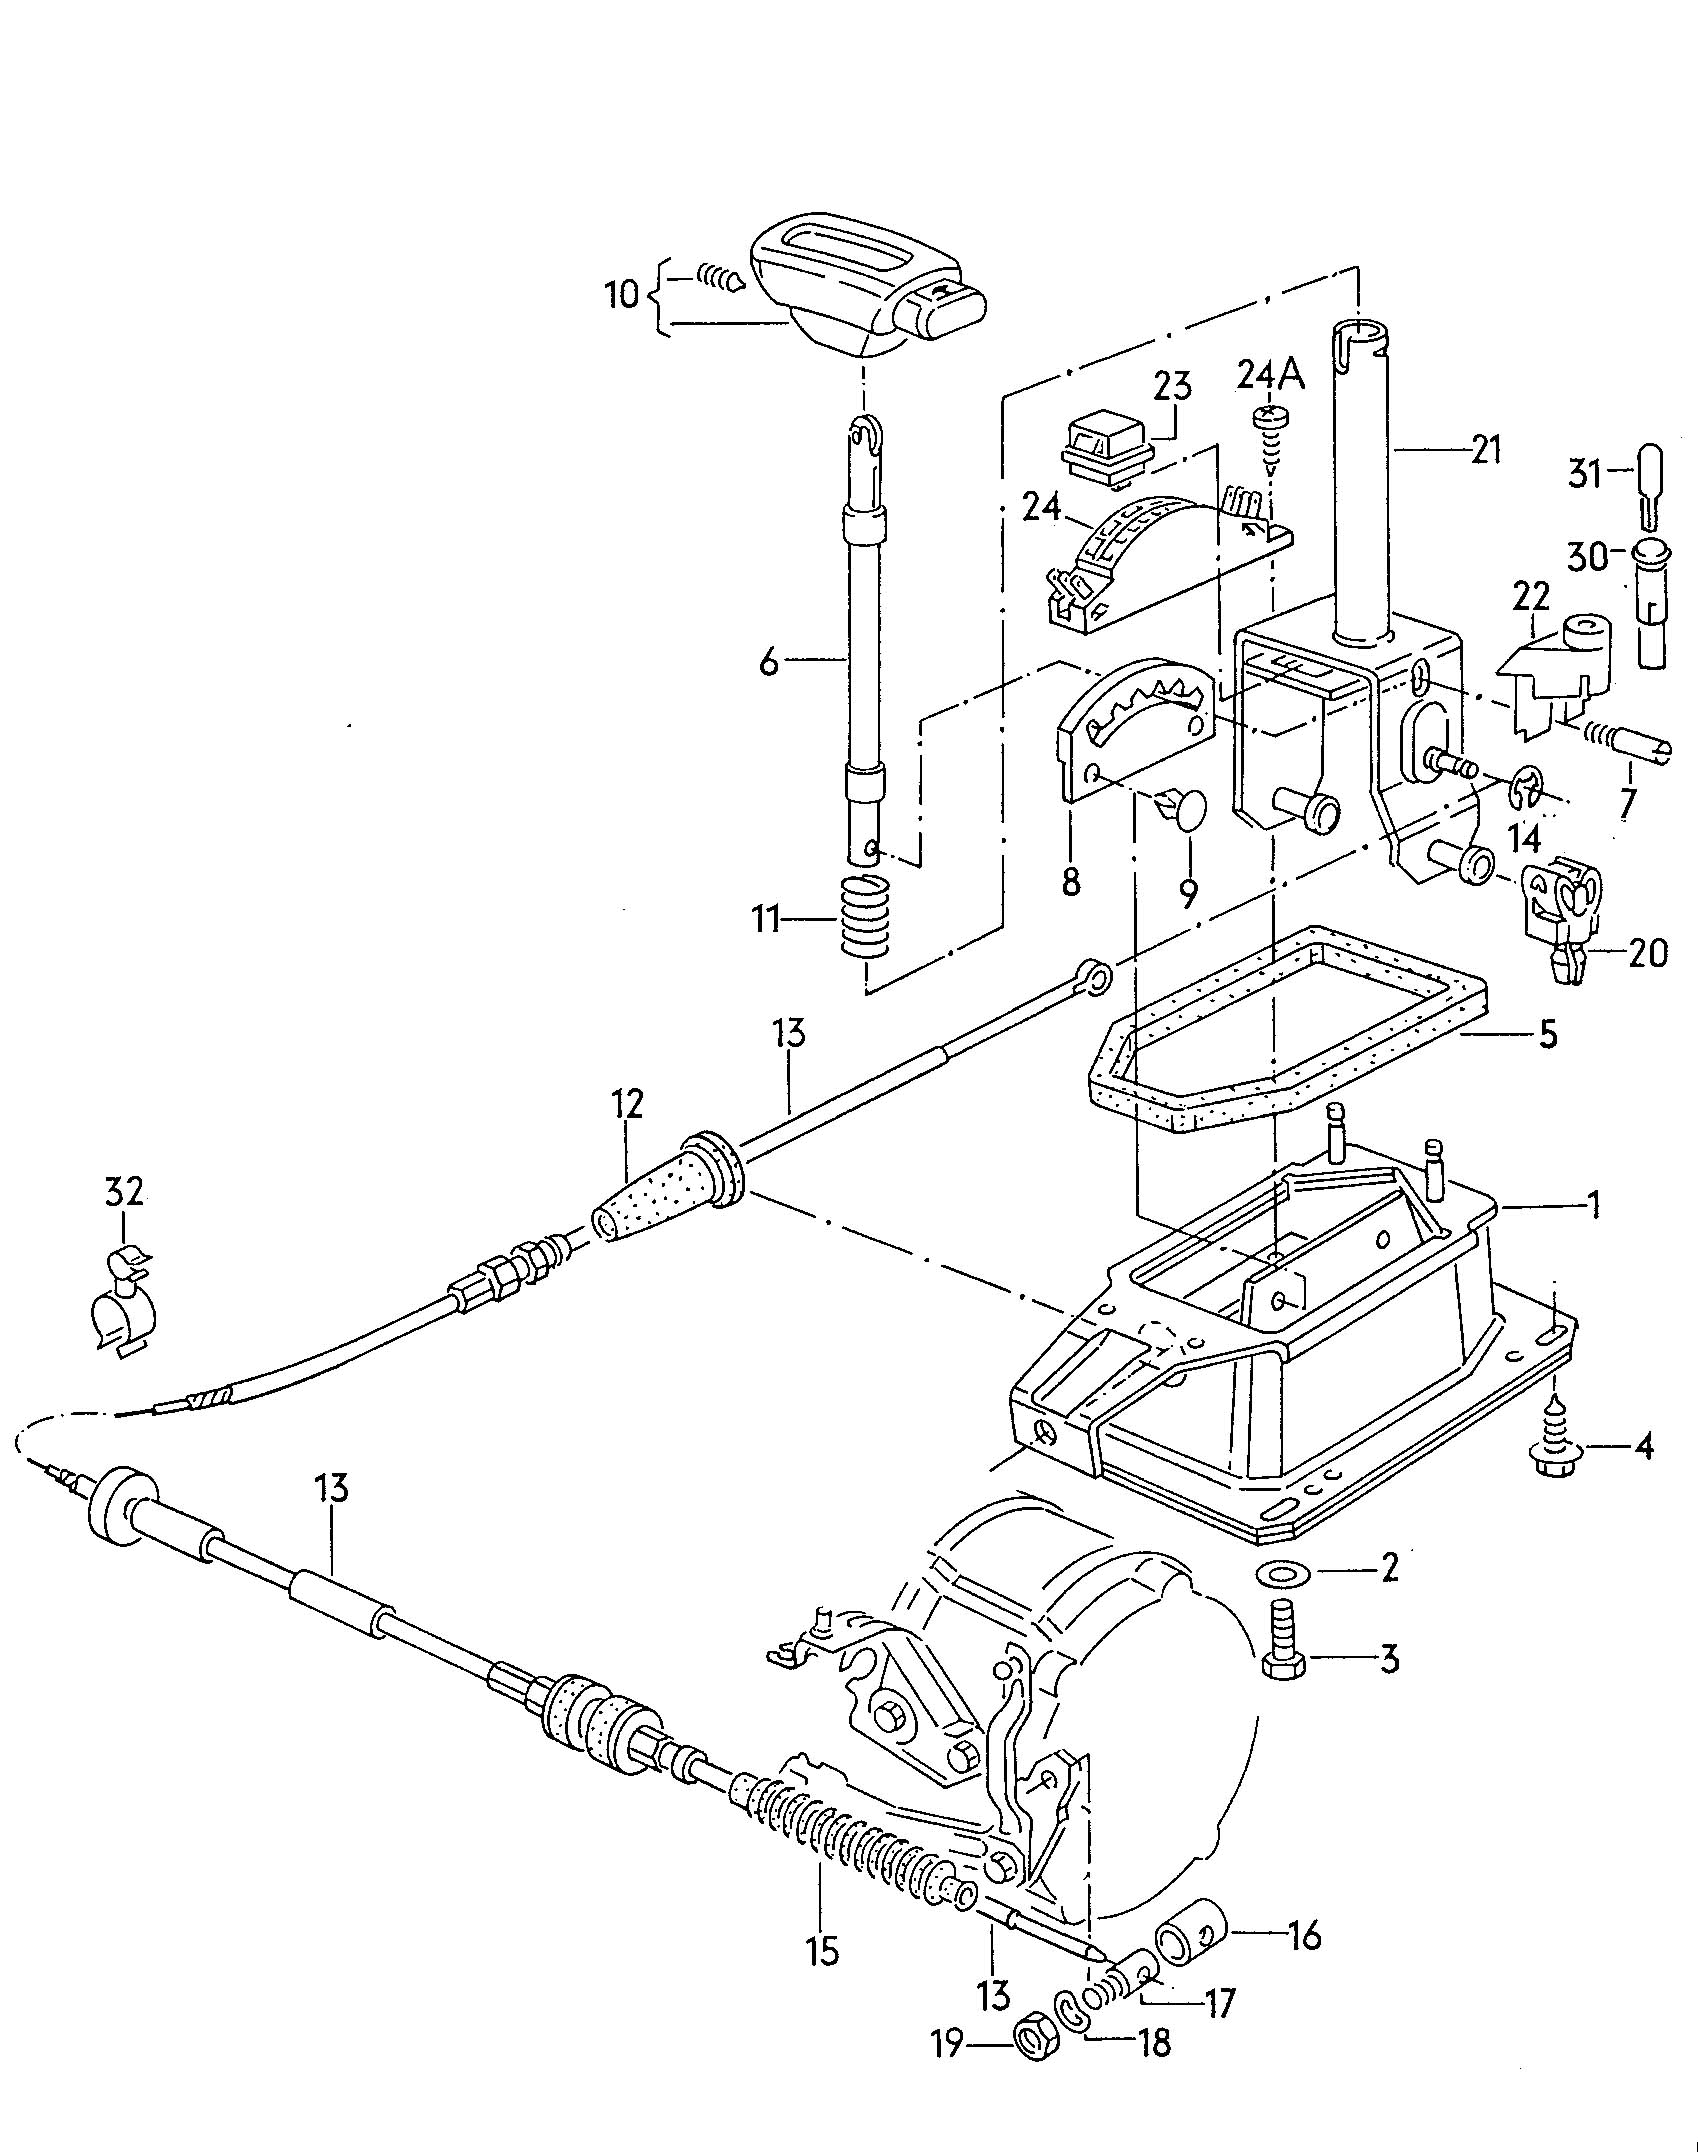 Service manual [How To Install Shifter Mechanism 1990